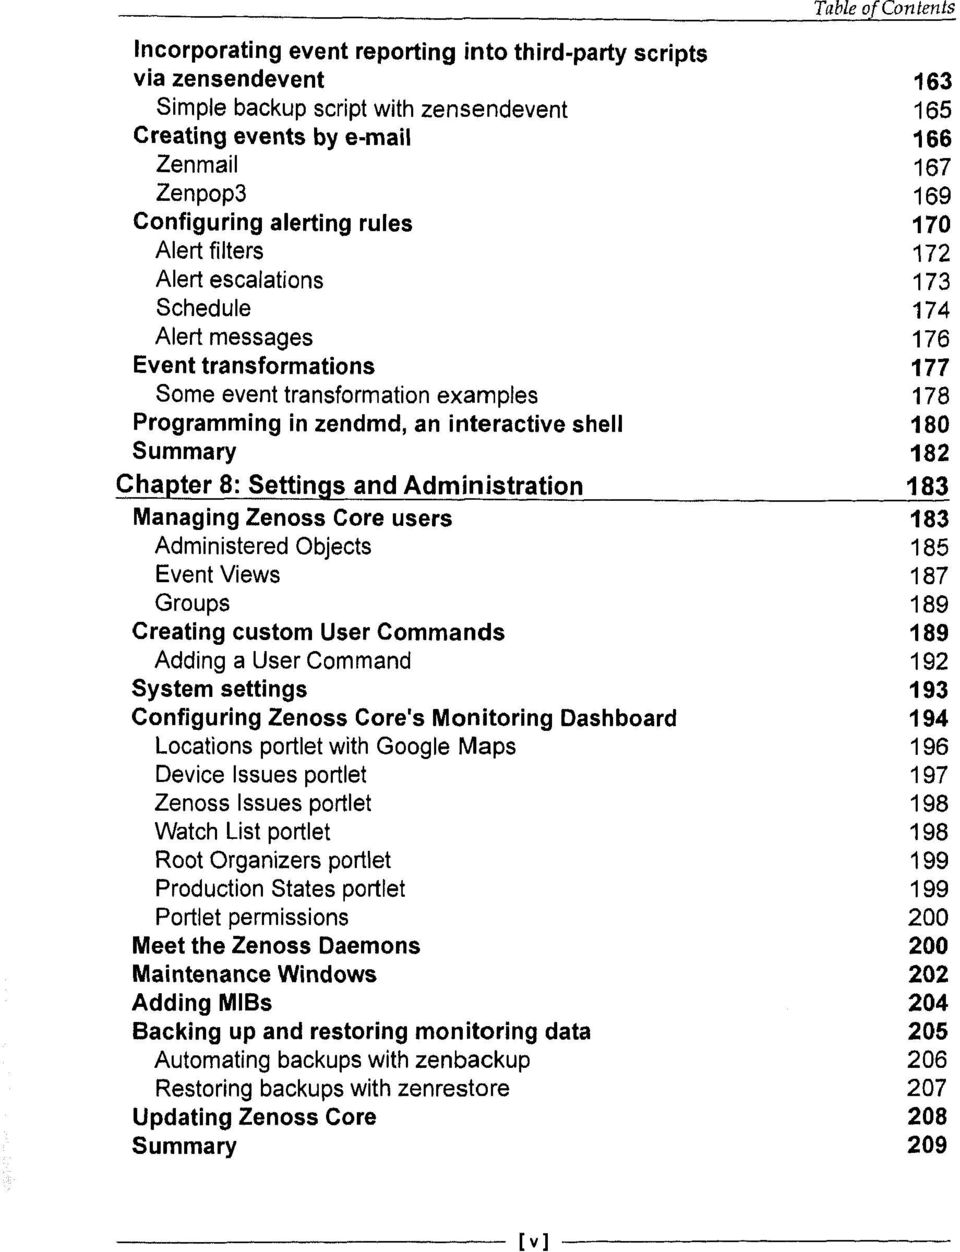 182 Chapter 8: Settings and Administration 183 Managing Zenoss Core users 183 Administered Objects 185 Event Views 187 Groups 189 Creating custom User Commands 189 Adding a User Command 192 System